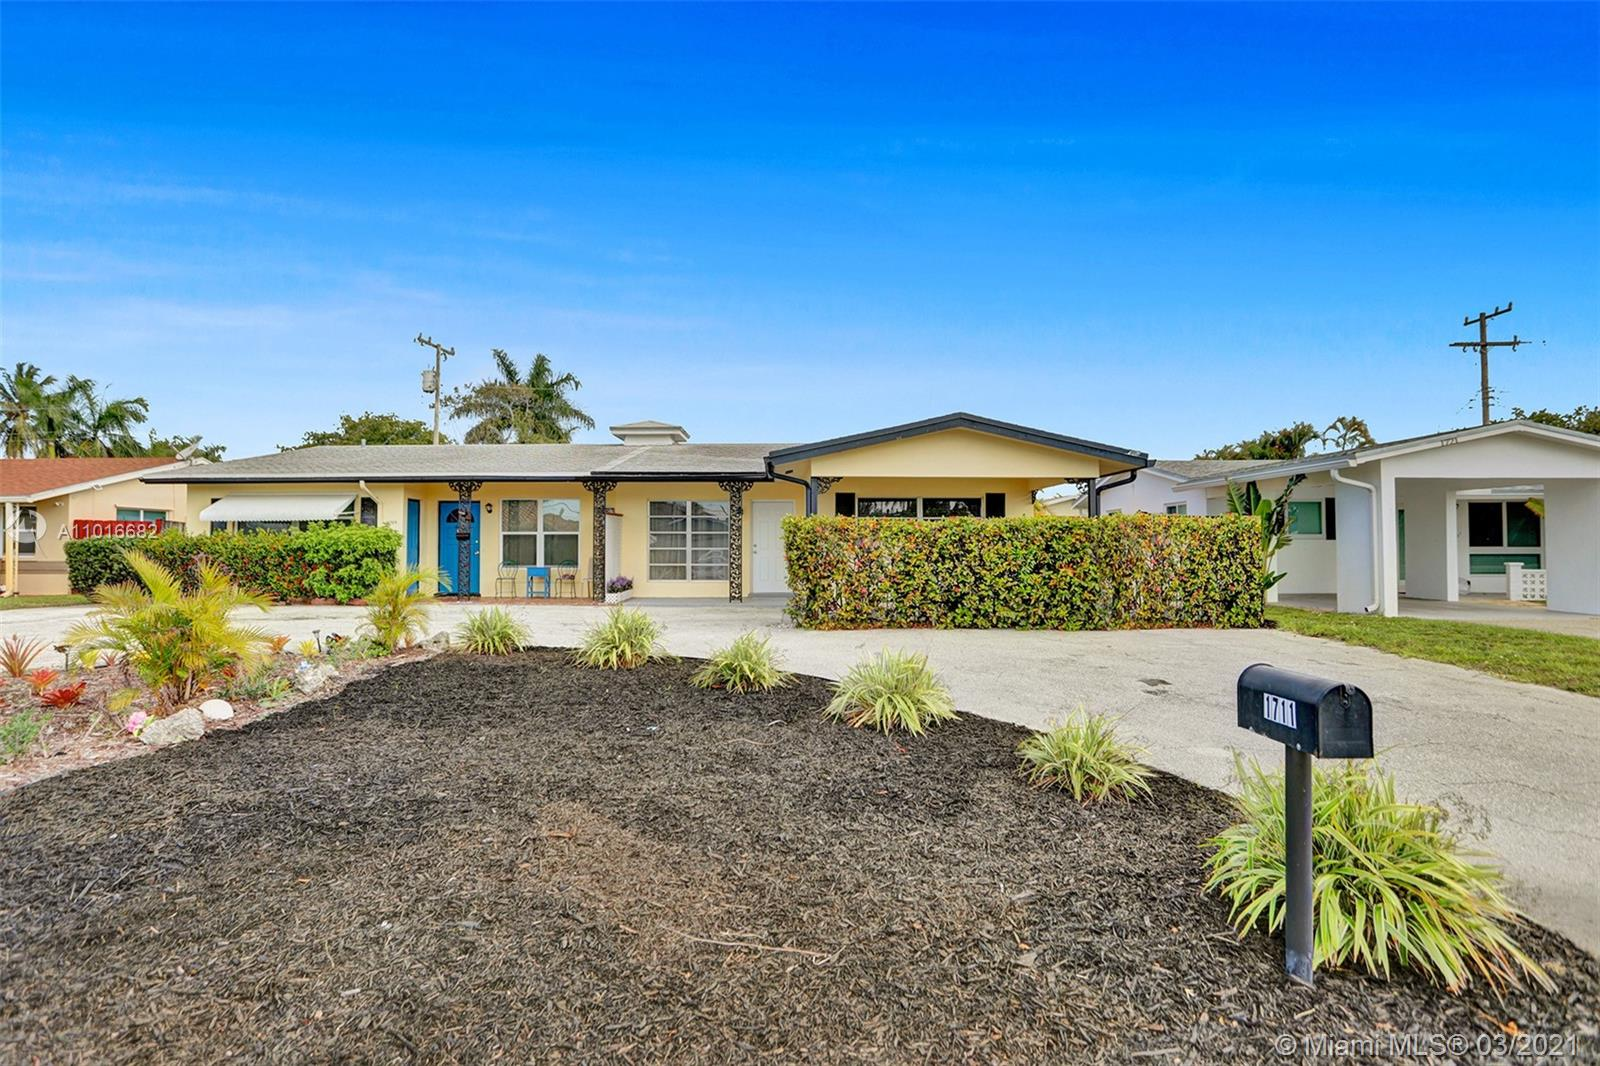 Coral Isles, 1711 NE 55th St, Fort Lauderdale, Florida 33334